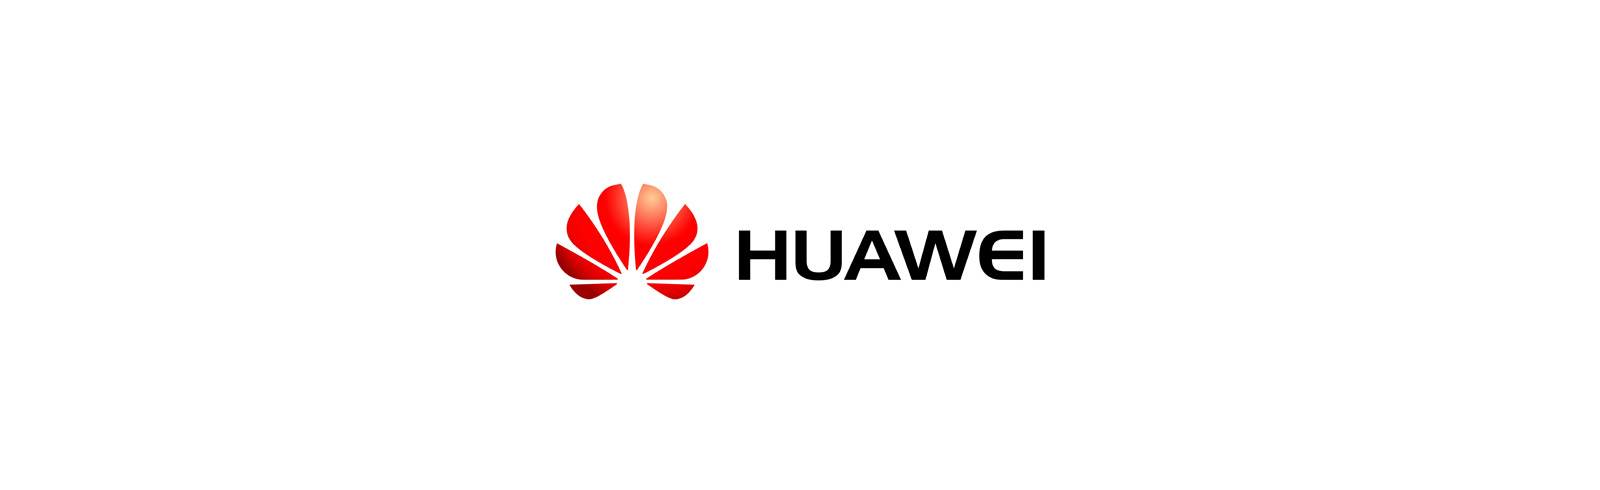 Huawei will enter the TV market later this year